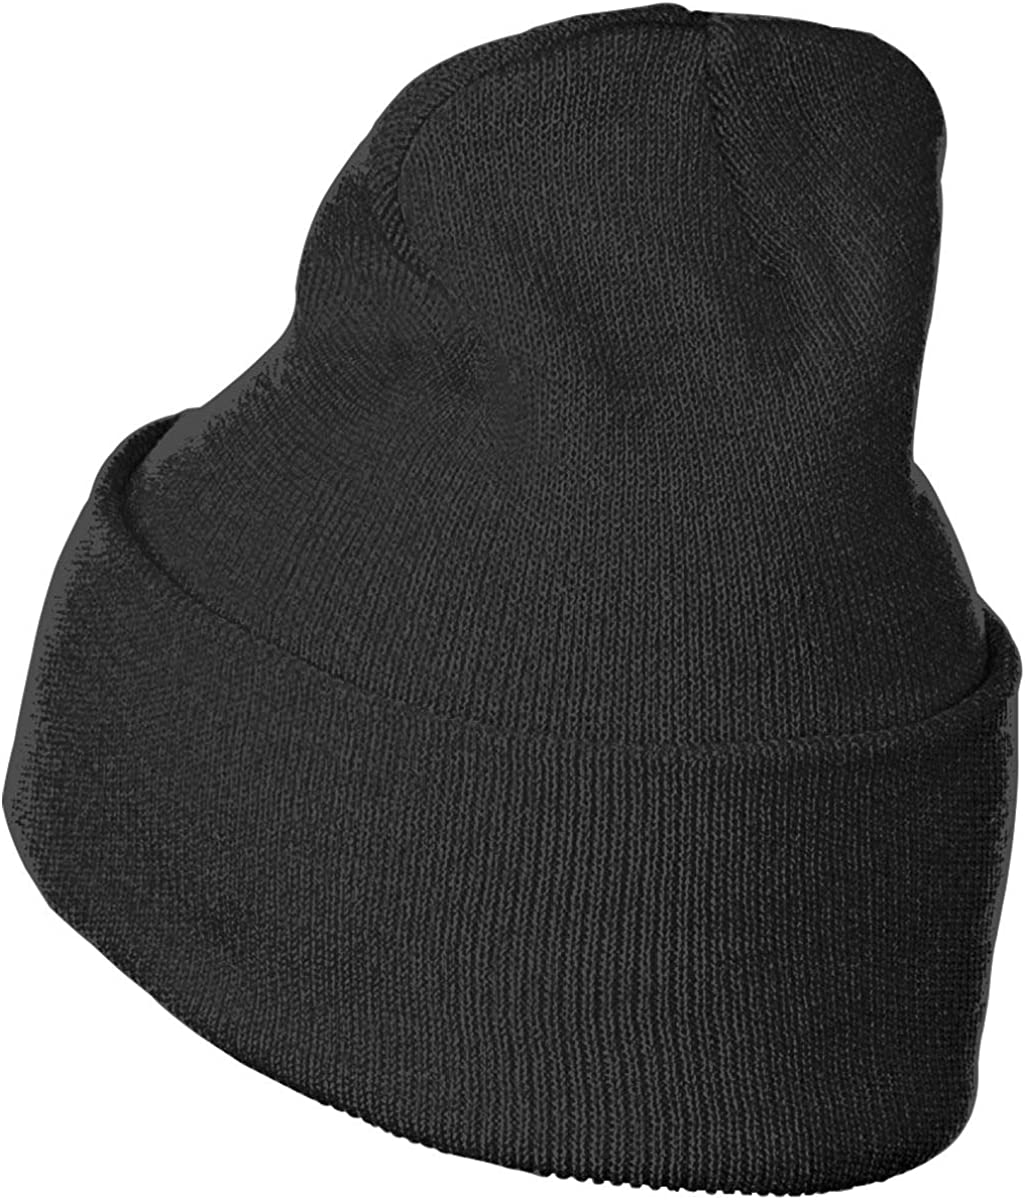 SLADDD1 Vegan AF Warm Winter Hat Knit Beanie Skull Cap Cuff Beanie Hat Winter Hats for Men /& Women